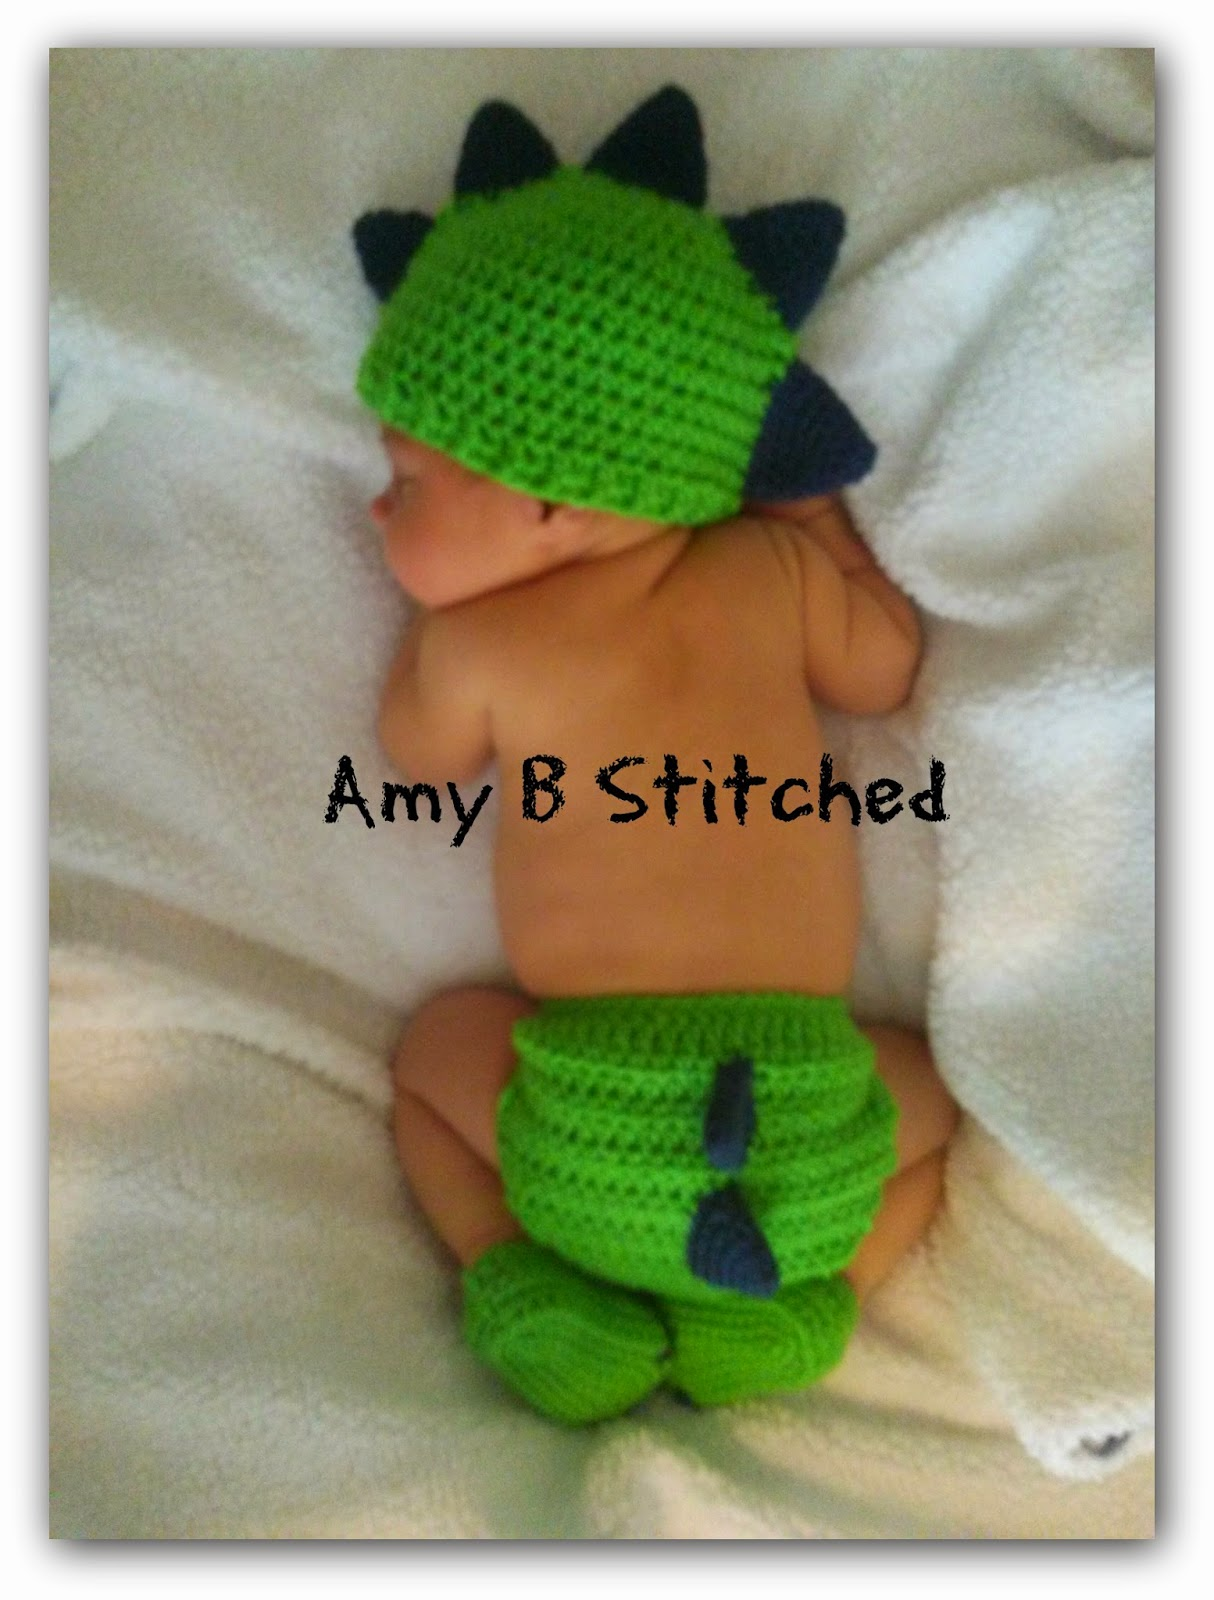 Crochet Dinosaur Hat And Diaper Cover Pattern : A Stitch At A Time for Amy B Stitched: DINOSAUR BABY Hat ...